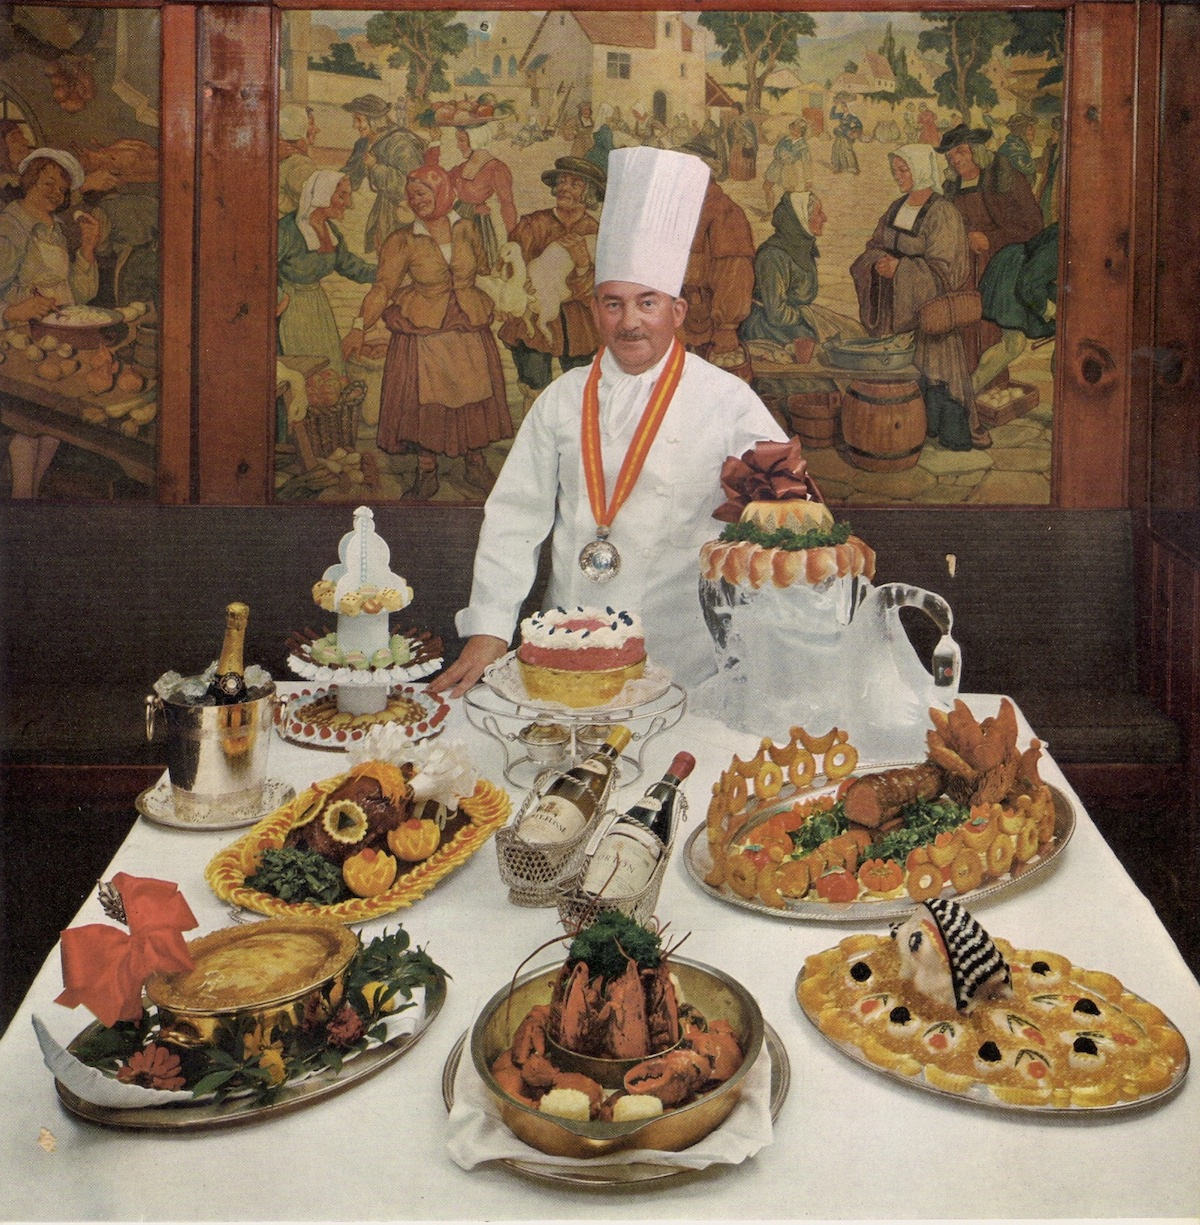 La Cremaillere-a-la-Campagne Restaurant, Banksville New York Chef Antoine Gilly and his hilarously overblown food.... Life Picture Cookbook